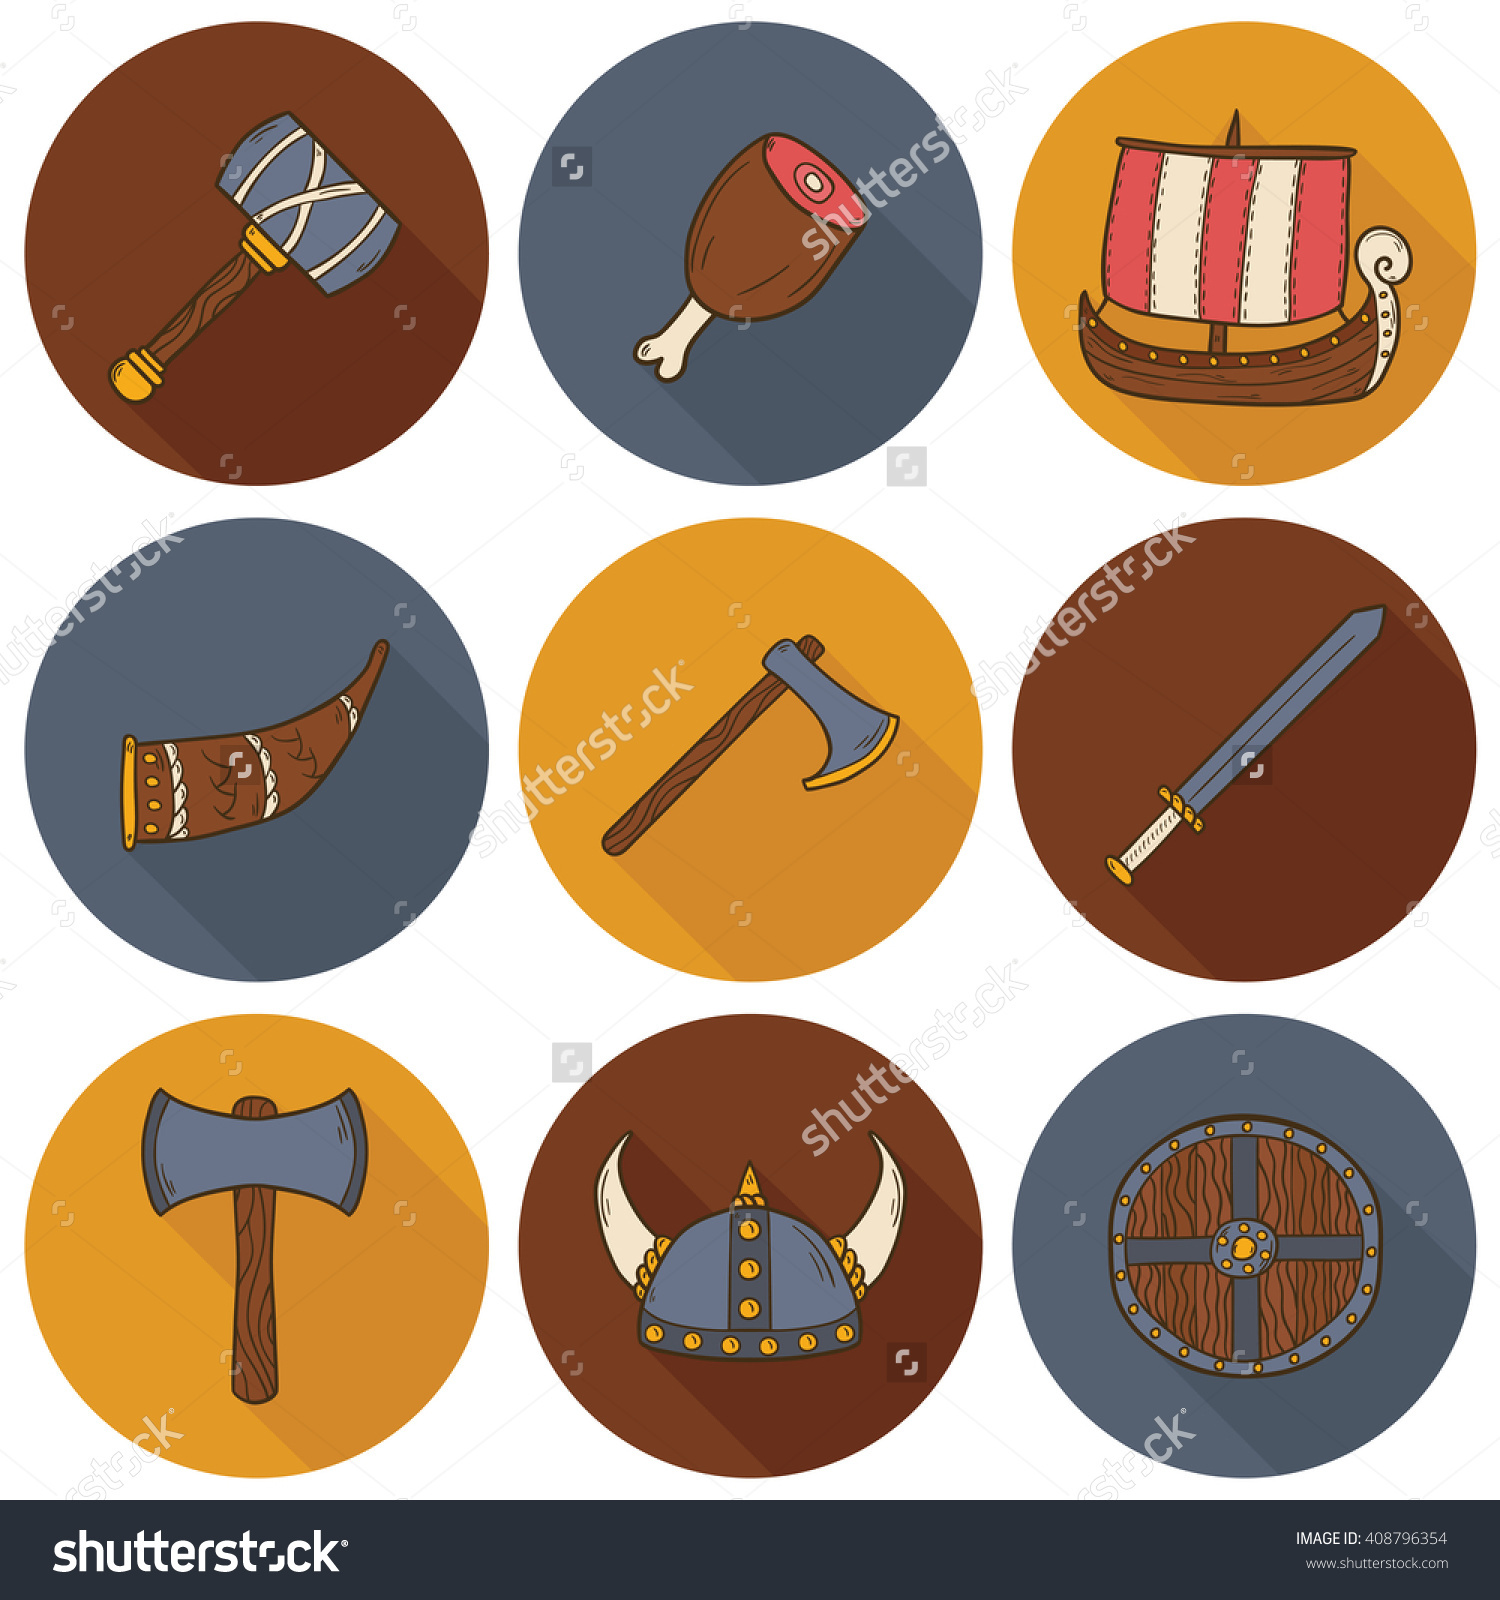 Illustration Cartoon Hand Drawn Viking Icons Stock Illustration.